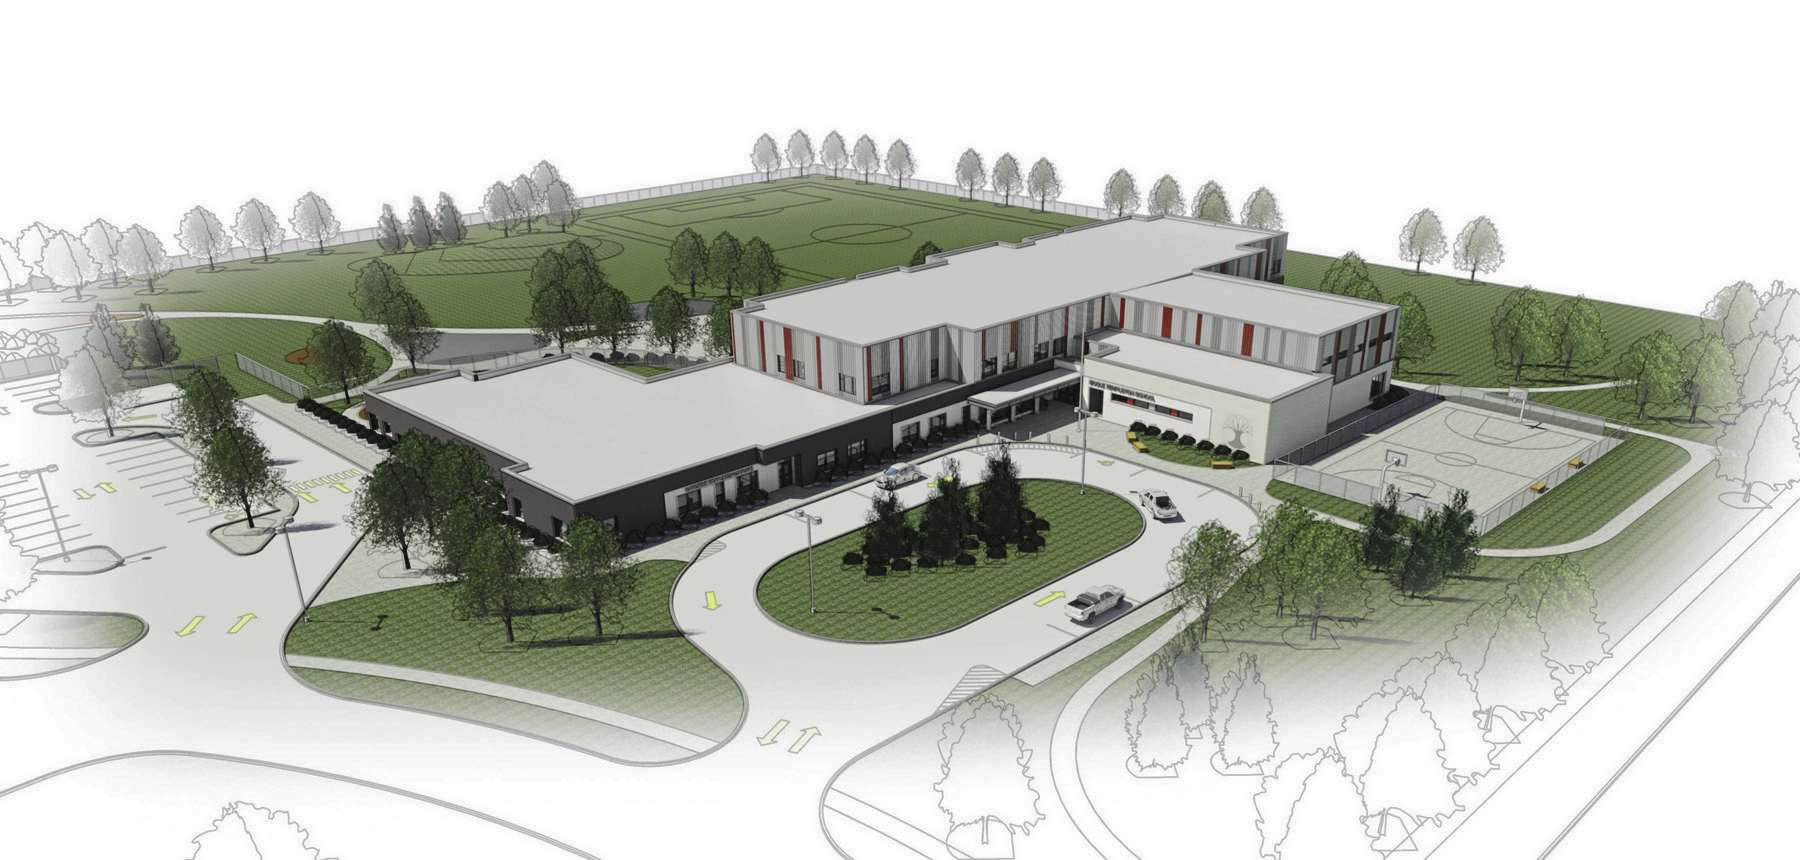 An artist's rendering of the new school being built by the Seven Oaks School Division at 1310 Templeton Ave.